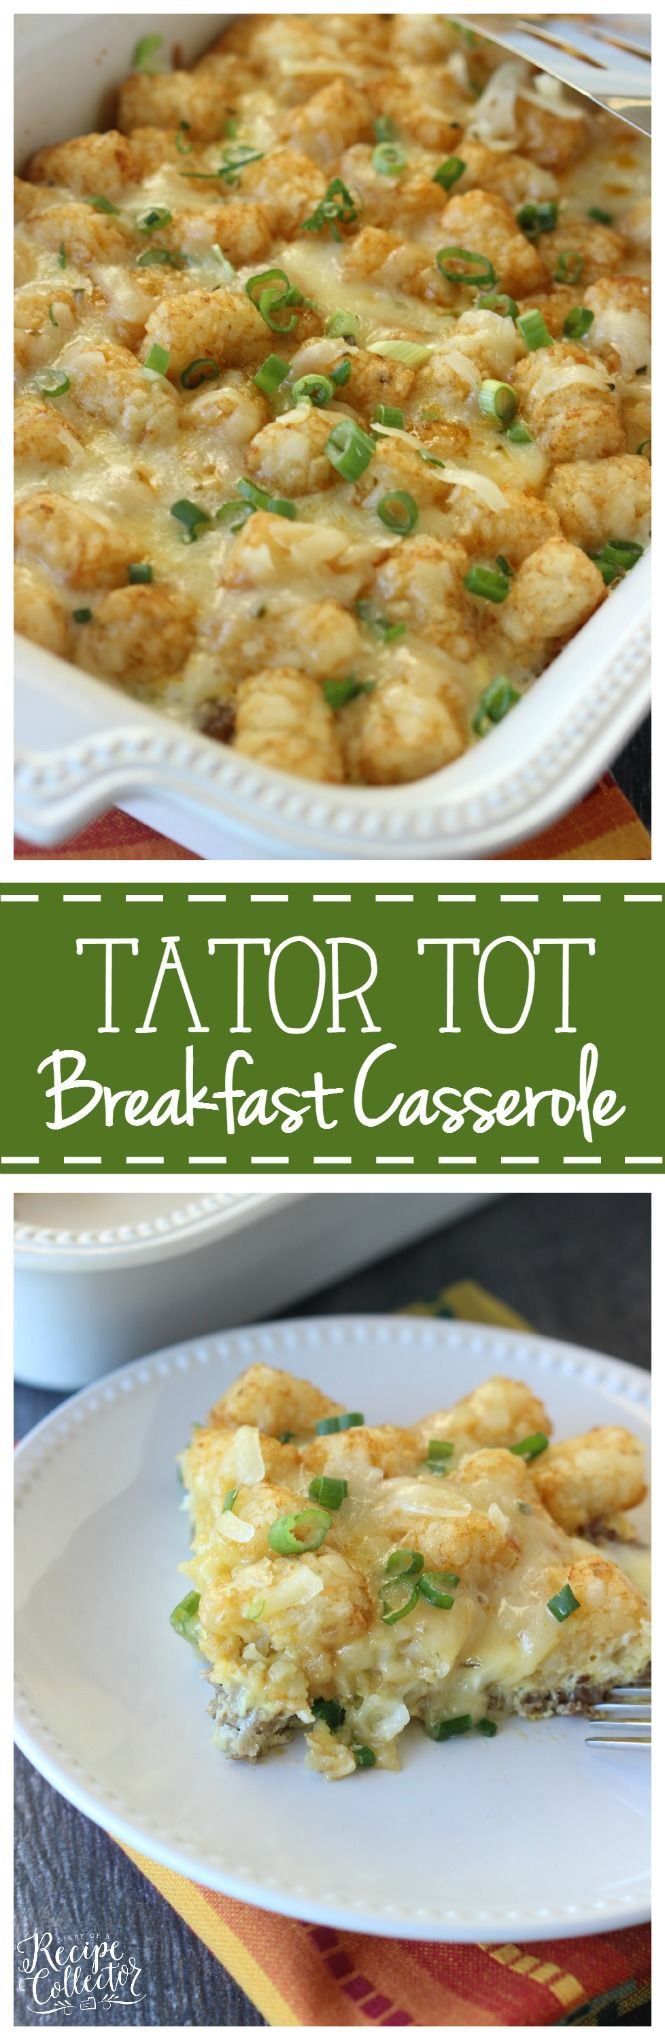 Tator Tot Breakfast Casserole - An easy breakfast casserole filled with breakfast sausage, eggs, pepperjack cheese, green onions and tator tots!